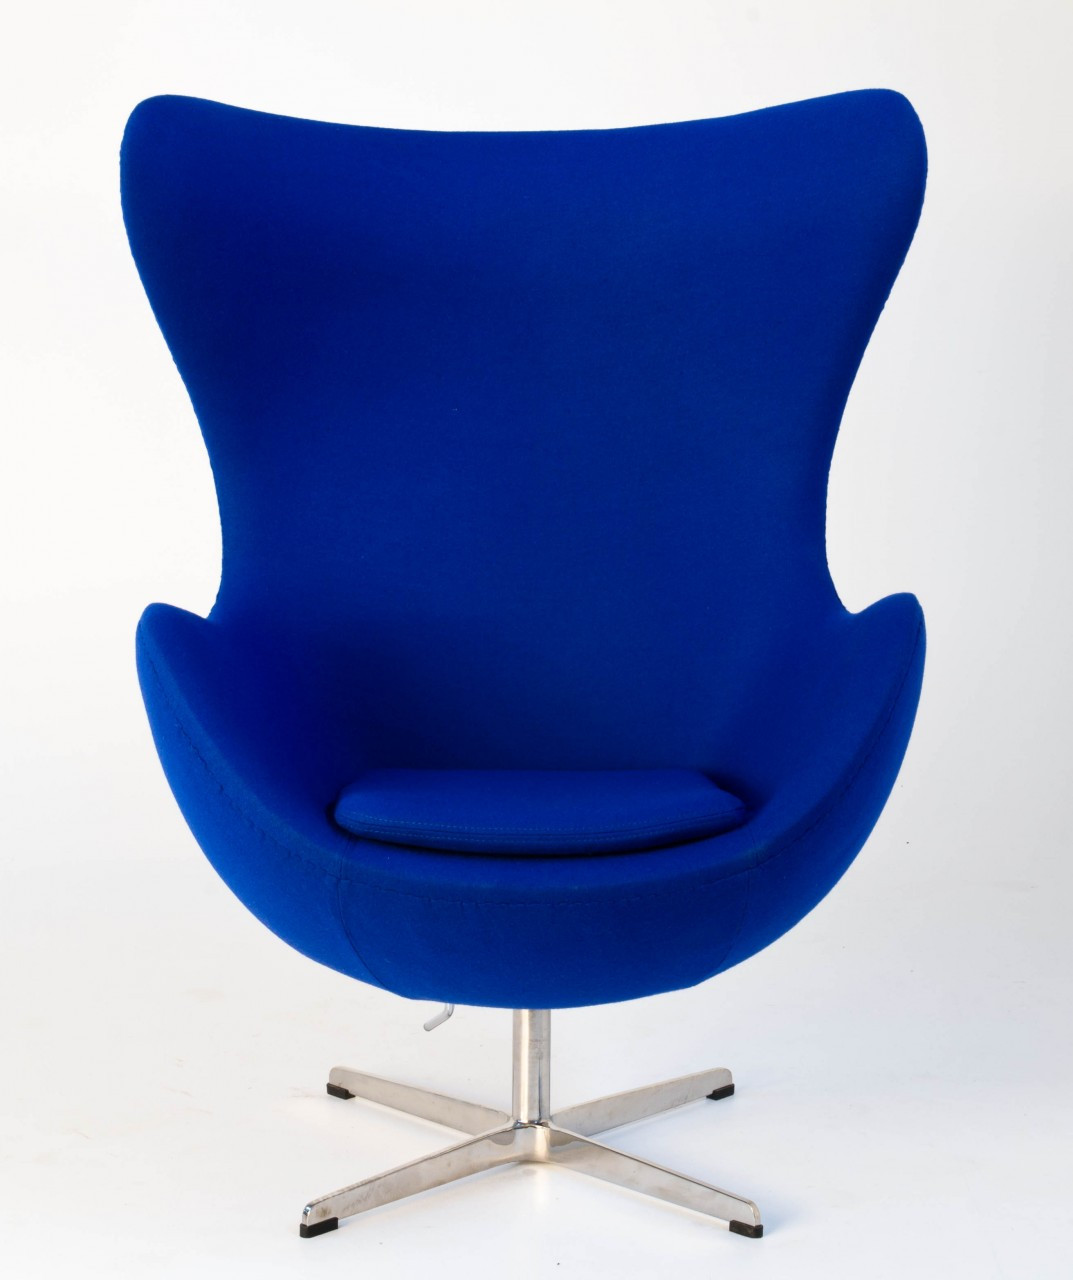 replica egg chair blue replica arne jacobsen egg chair. Black Bedroom Furniture Sets. Home Design Ideas